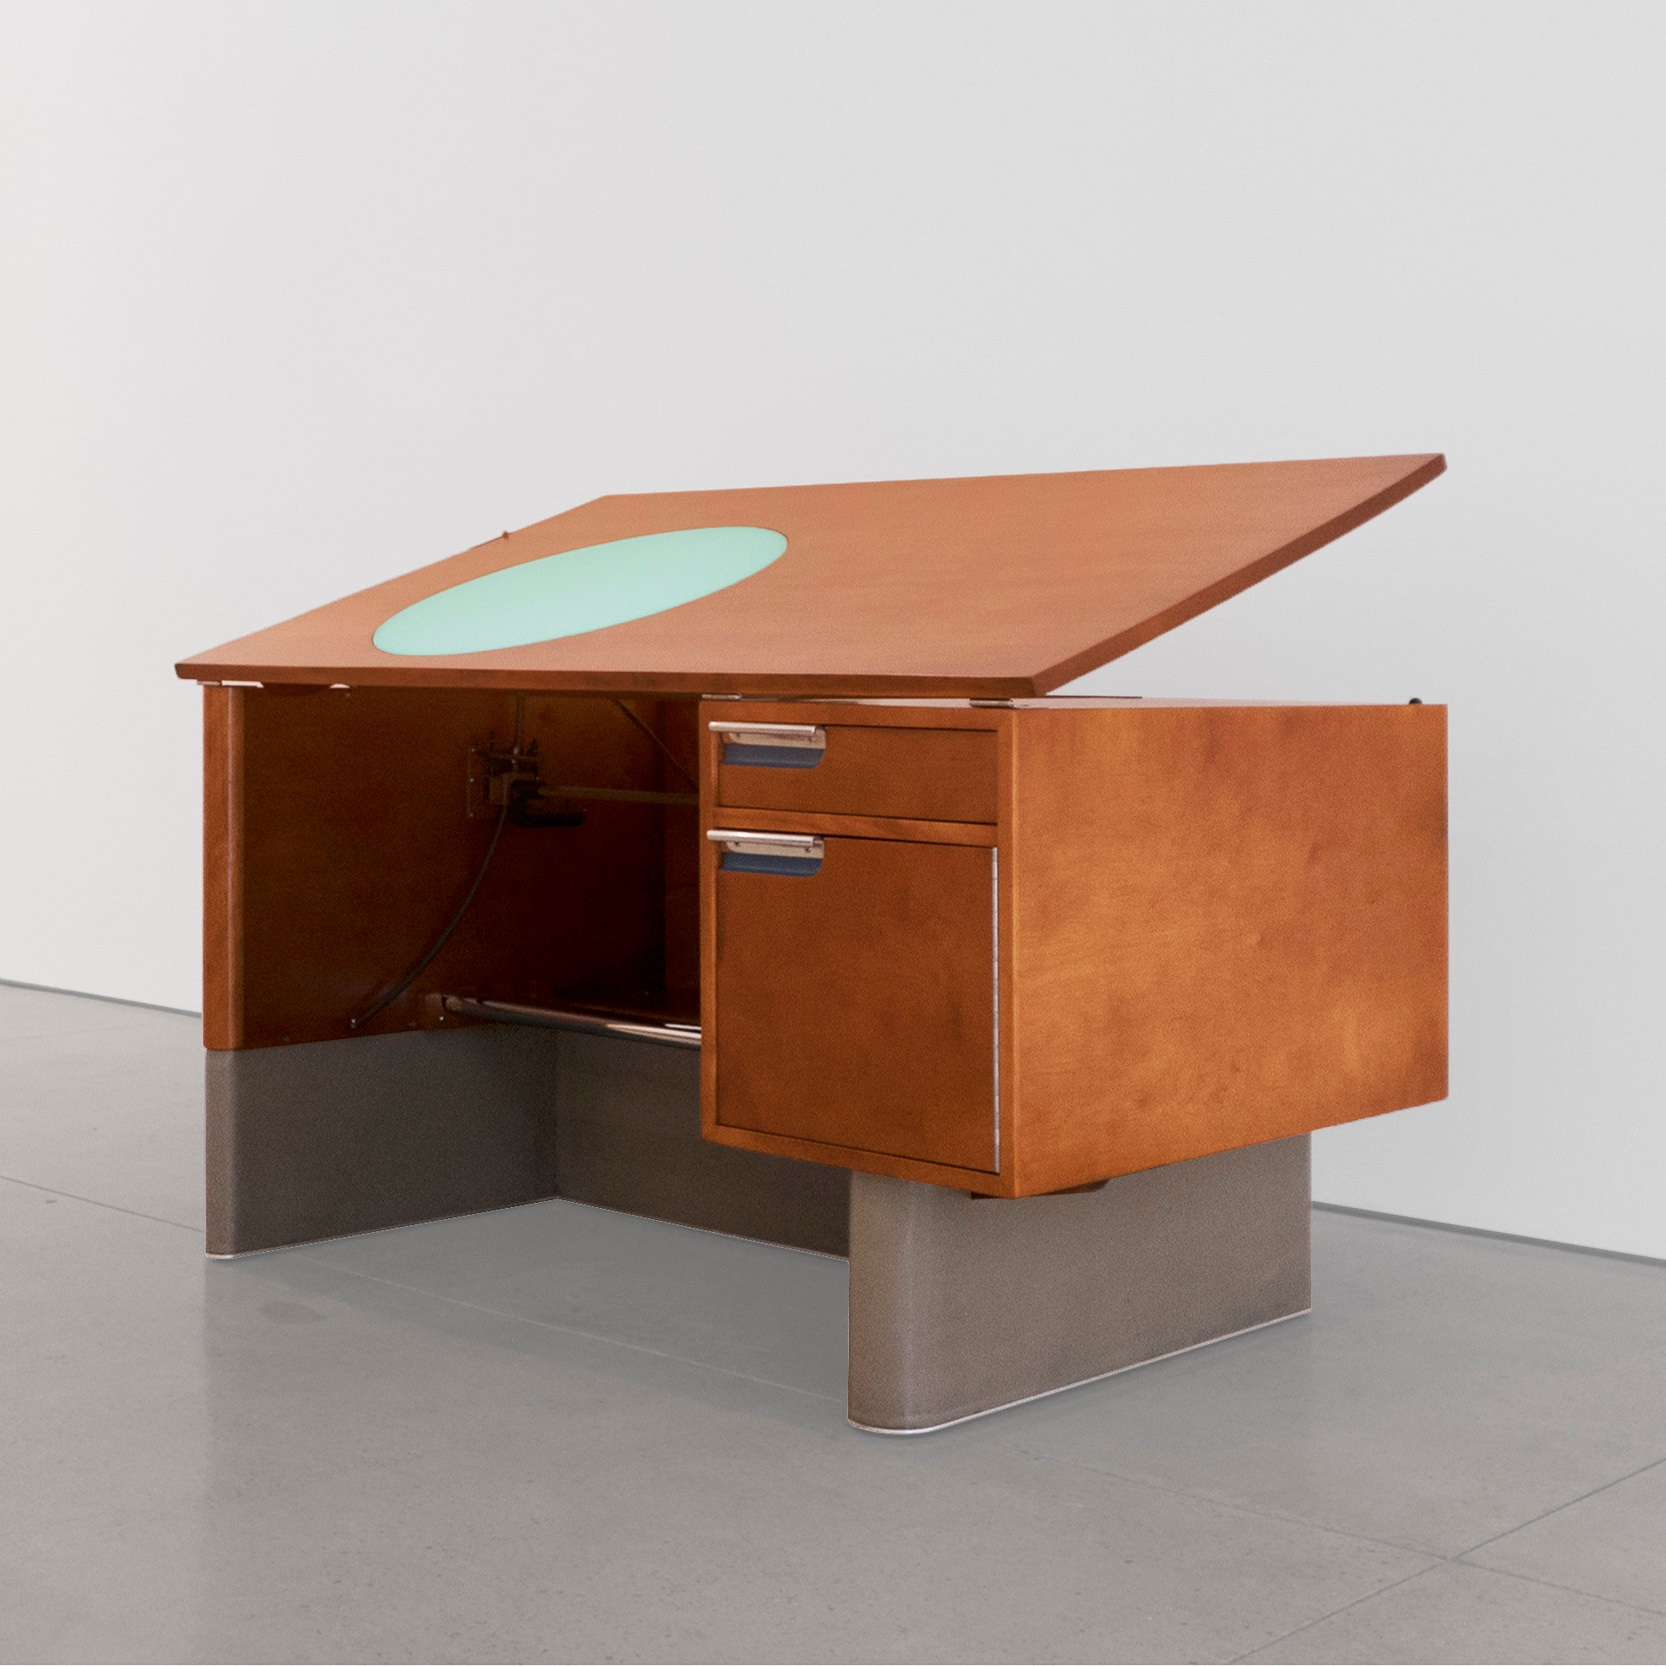 KEM WEBER WALT DISENY STUDIO ANIMATION DESK C. 1938 …